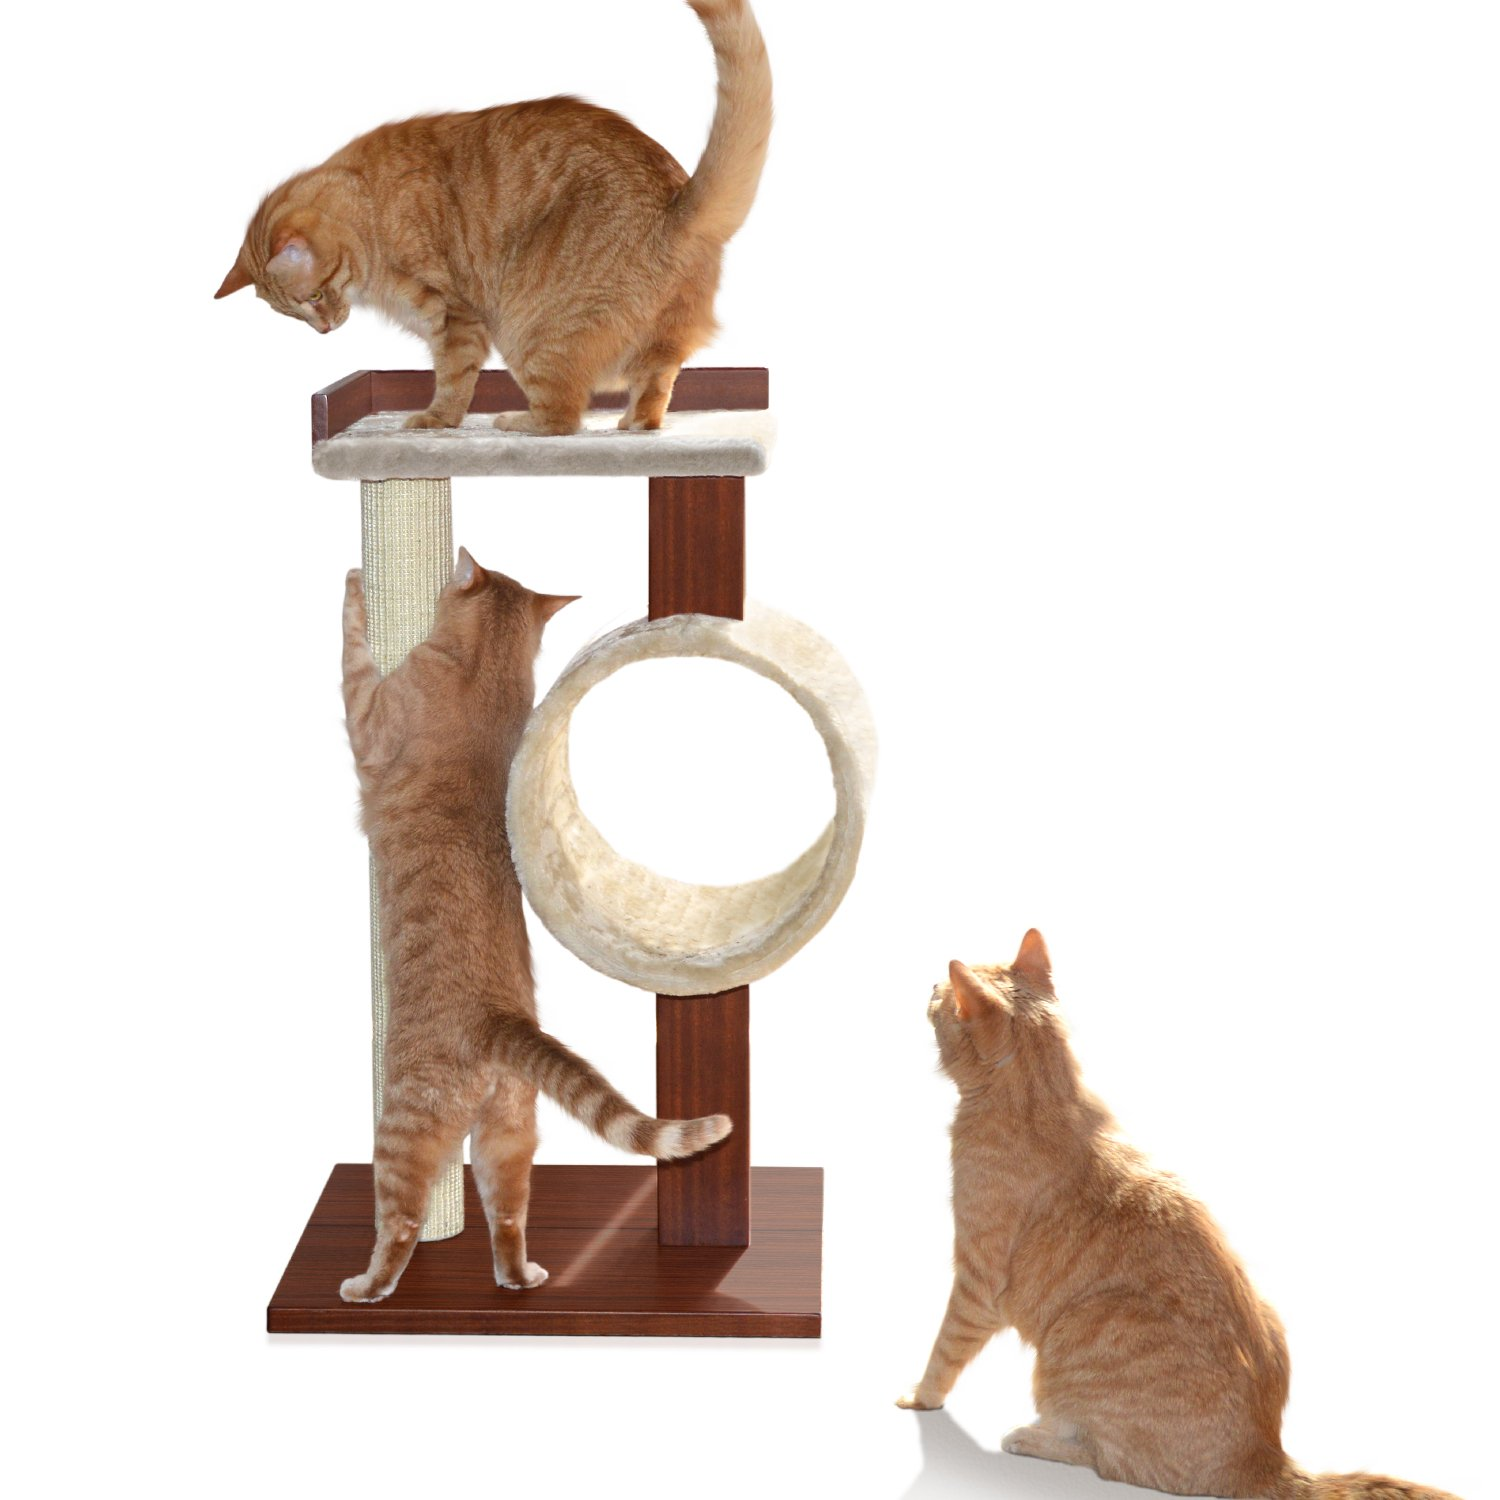 [New] Petfusion Modern Cat Activity Tree & Scratching Post (Furniture